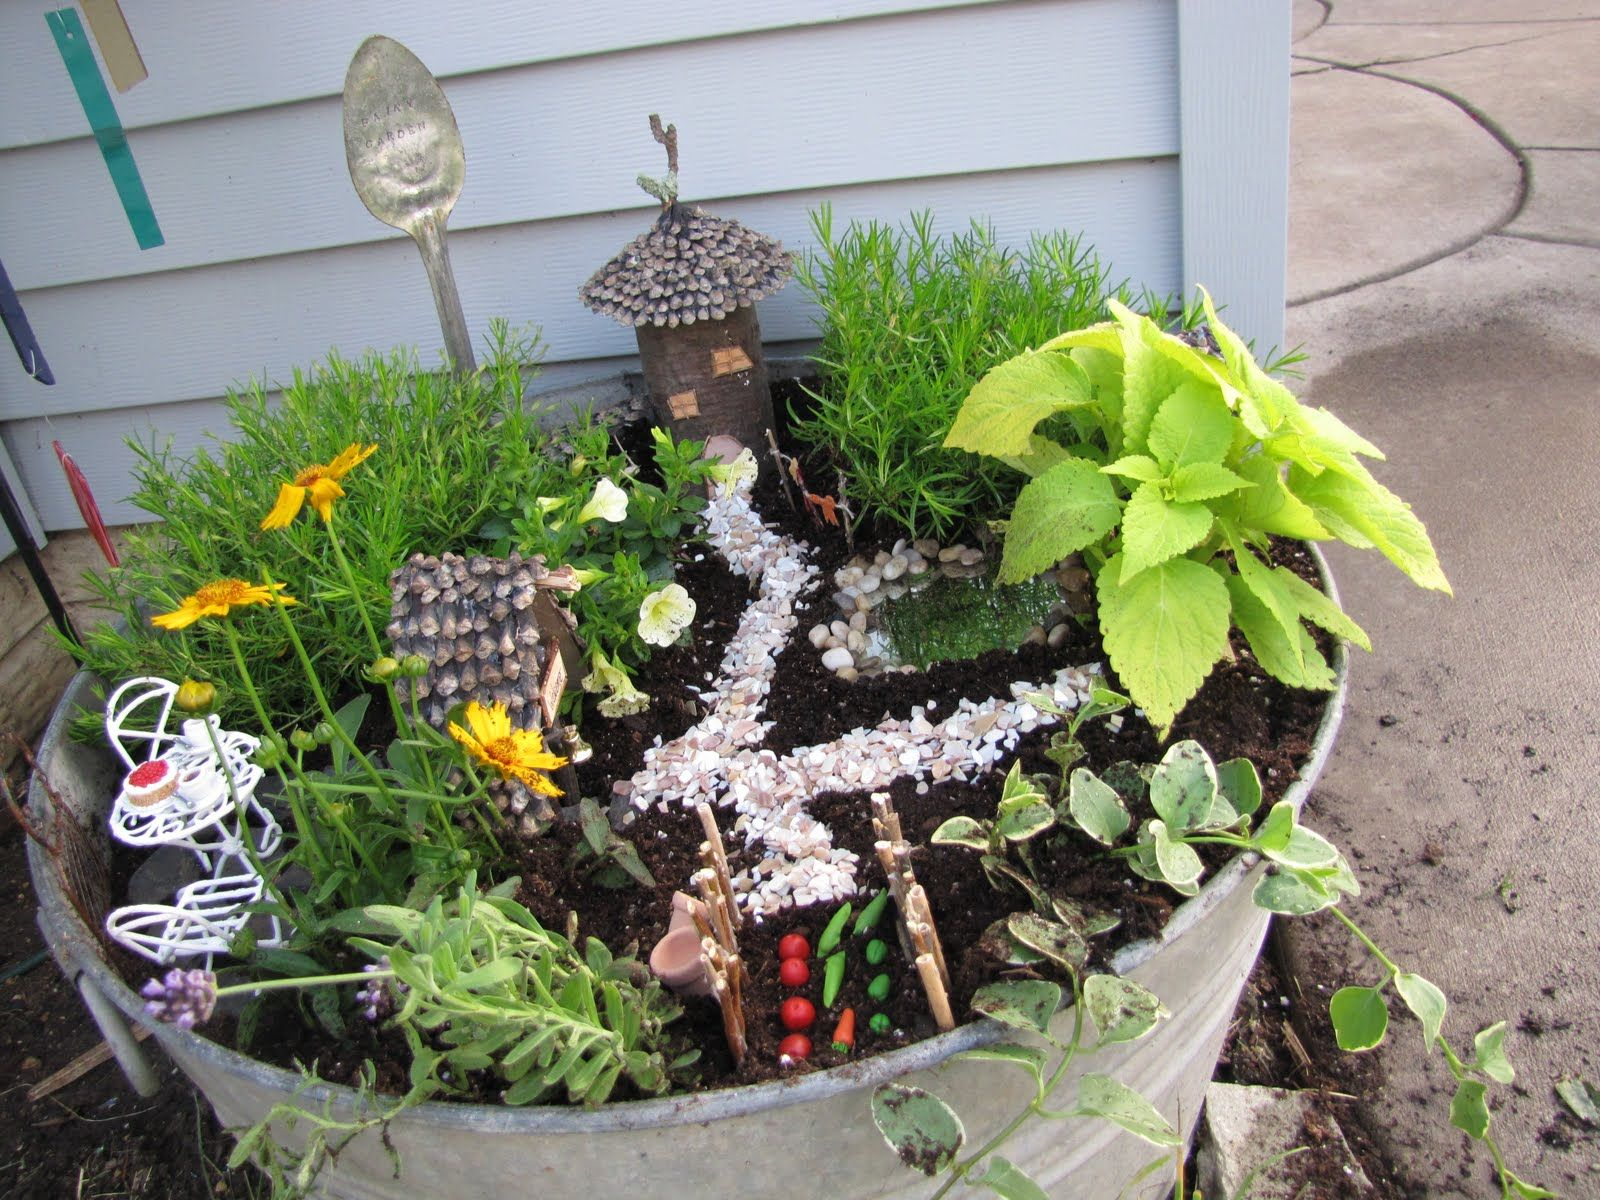 Fairy Garden Designs 17 best 1000 images about fairy garden ideas on pinterest gardens Images Of Fairy Gardens Fancilicious Fairylands The Mother Of All Fairy Gardens